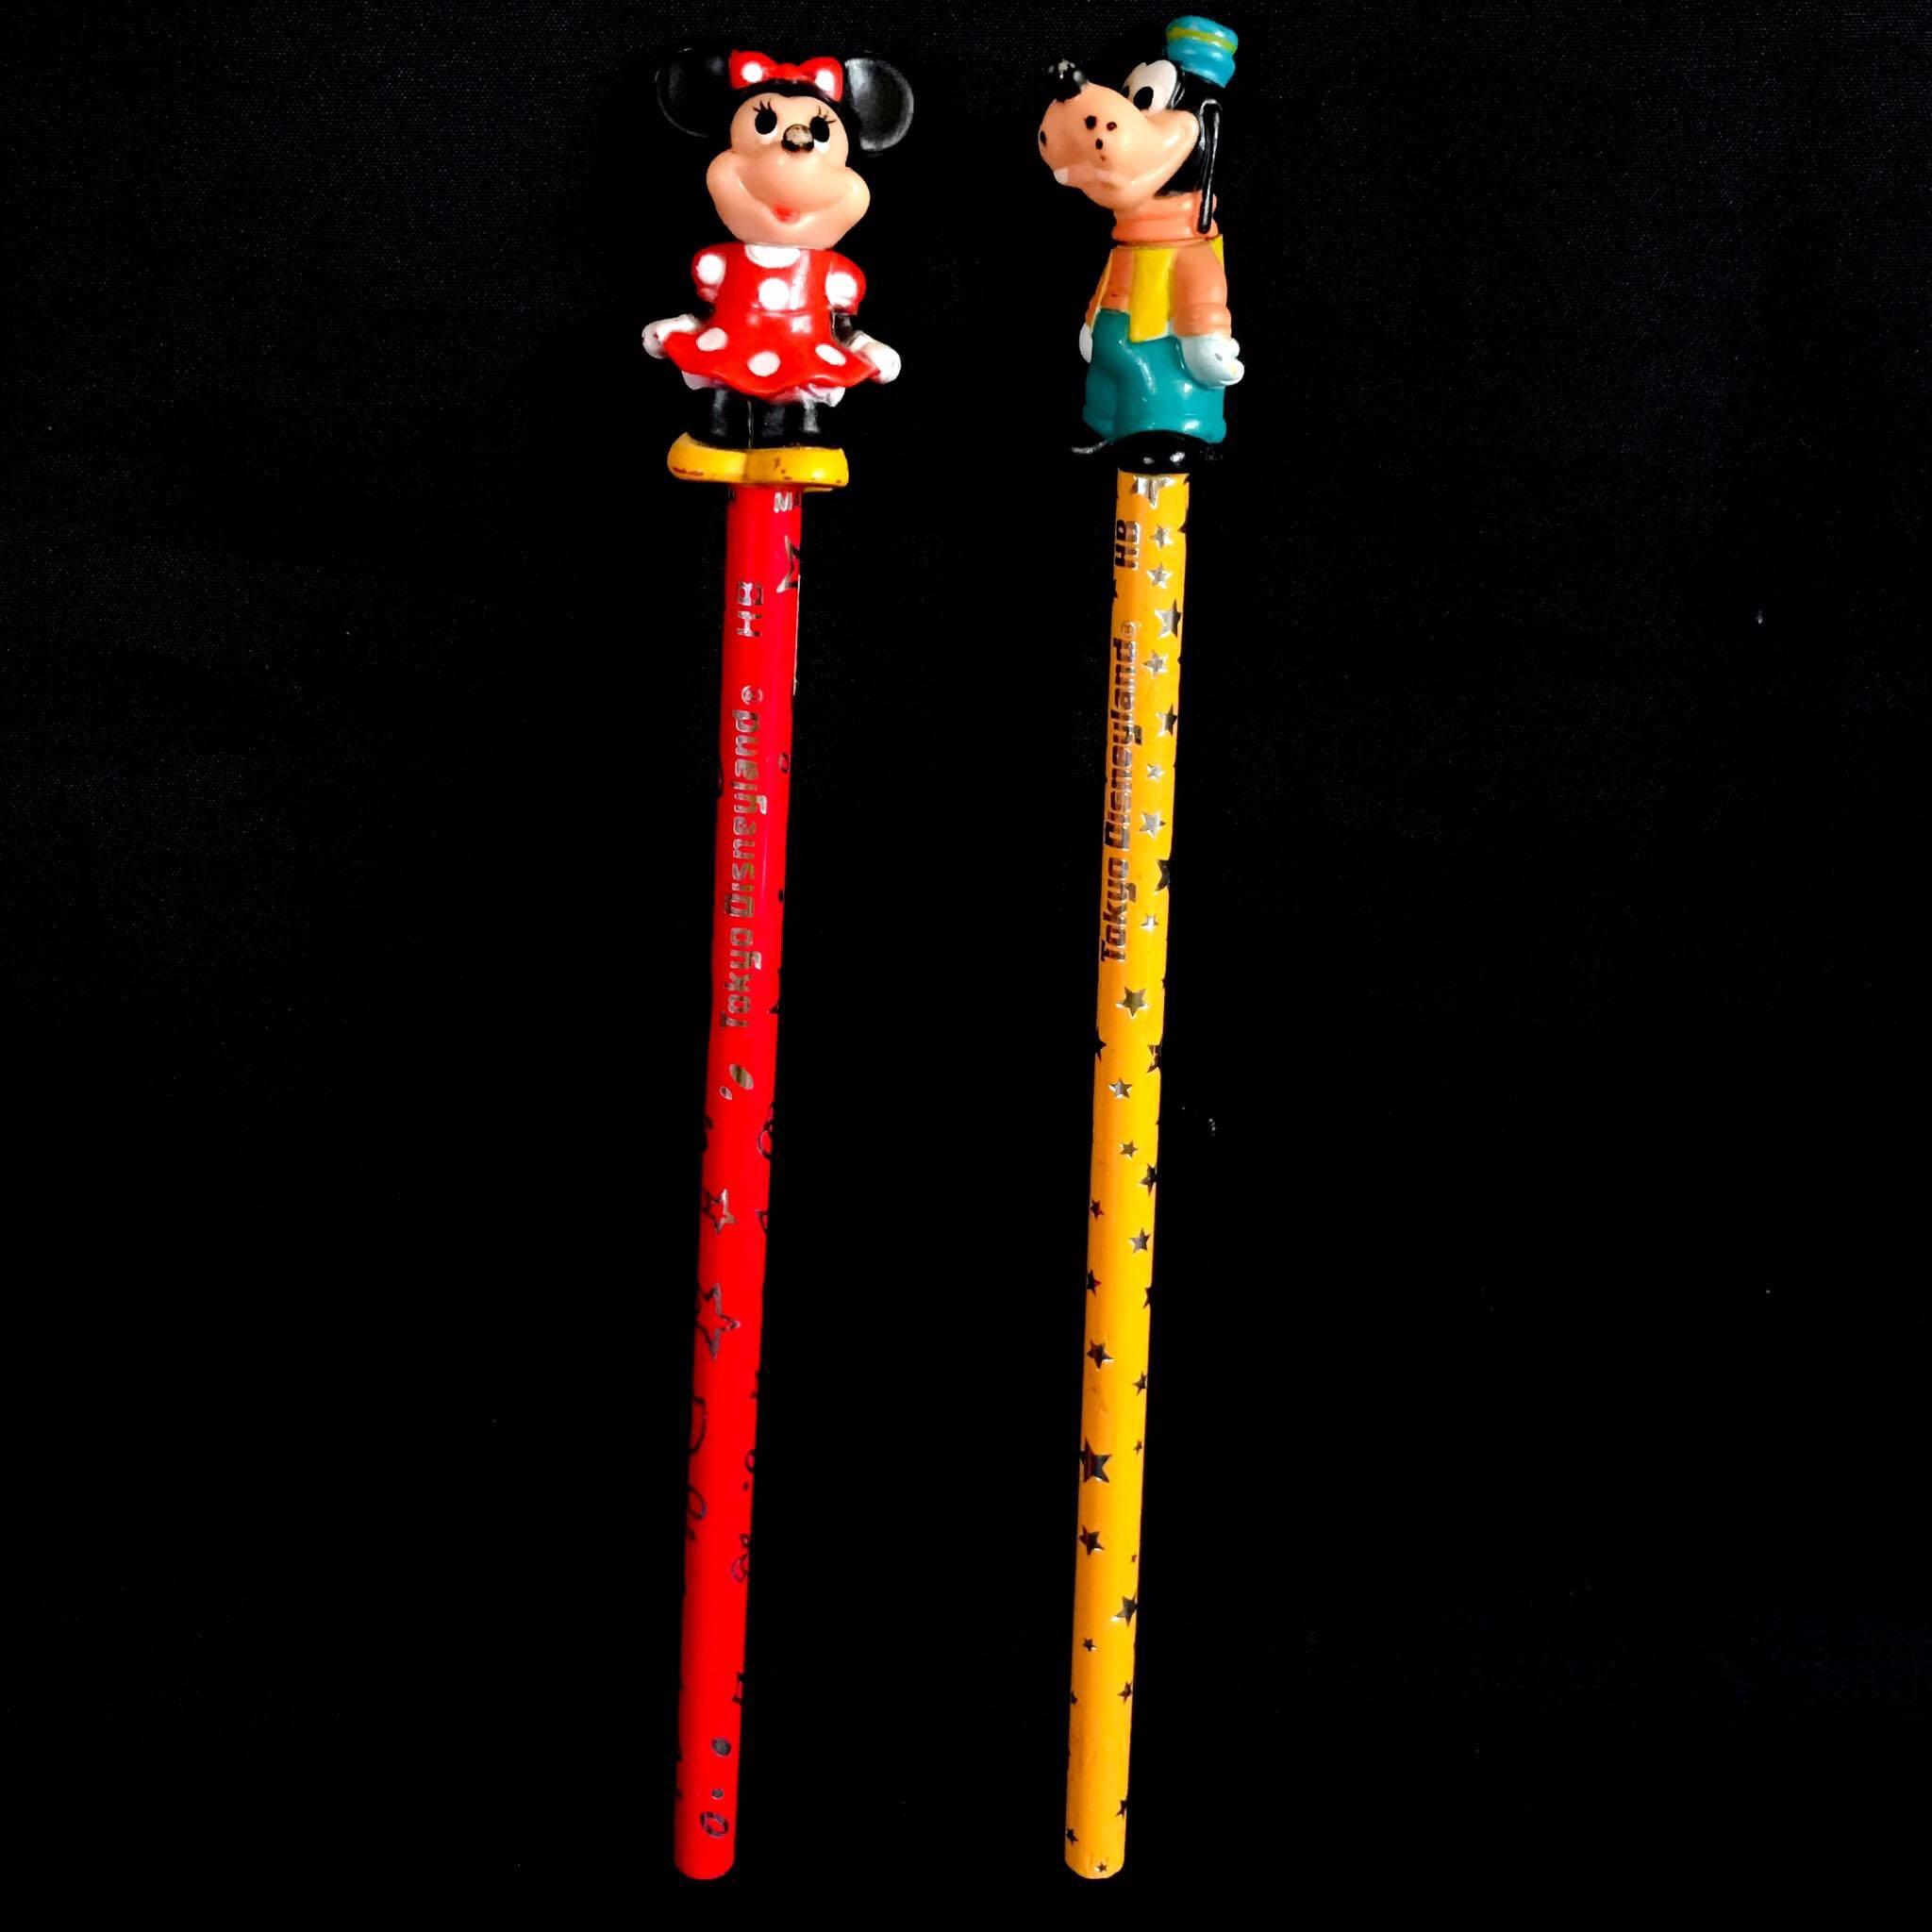 Vintage Tokyo Disneyland Minnie Mouse and Goofy pencil w/topper - Php 100 each